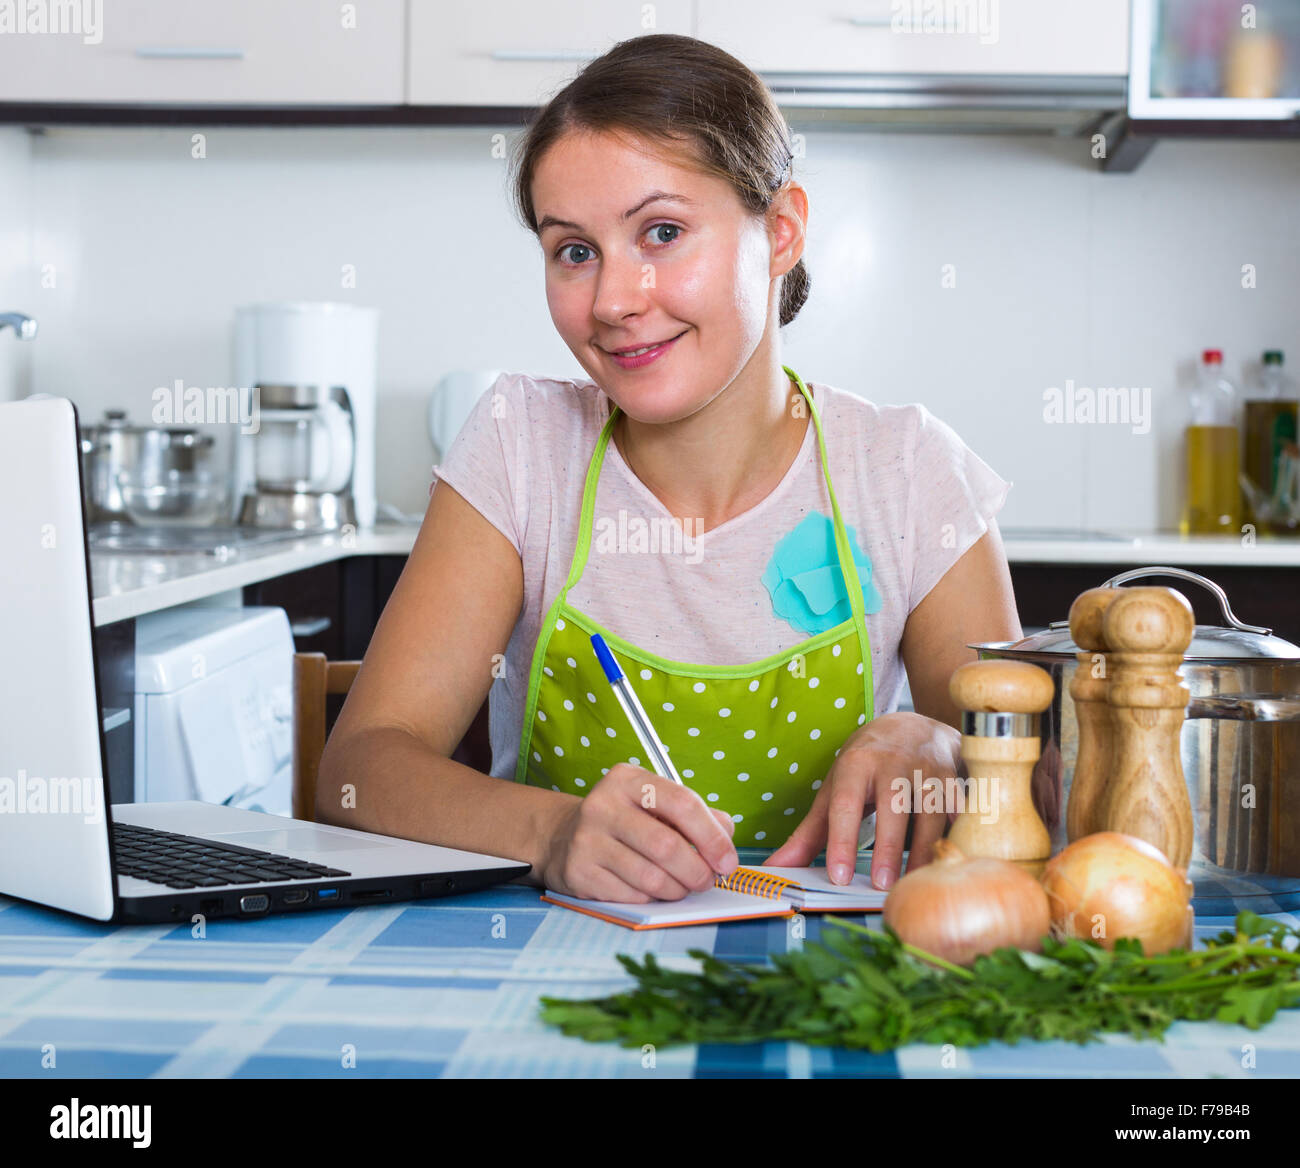 Happy Young Woman Making Shopping List In Domestic Kitchen Stock ...